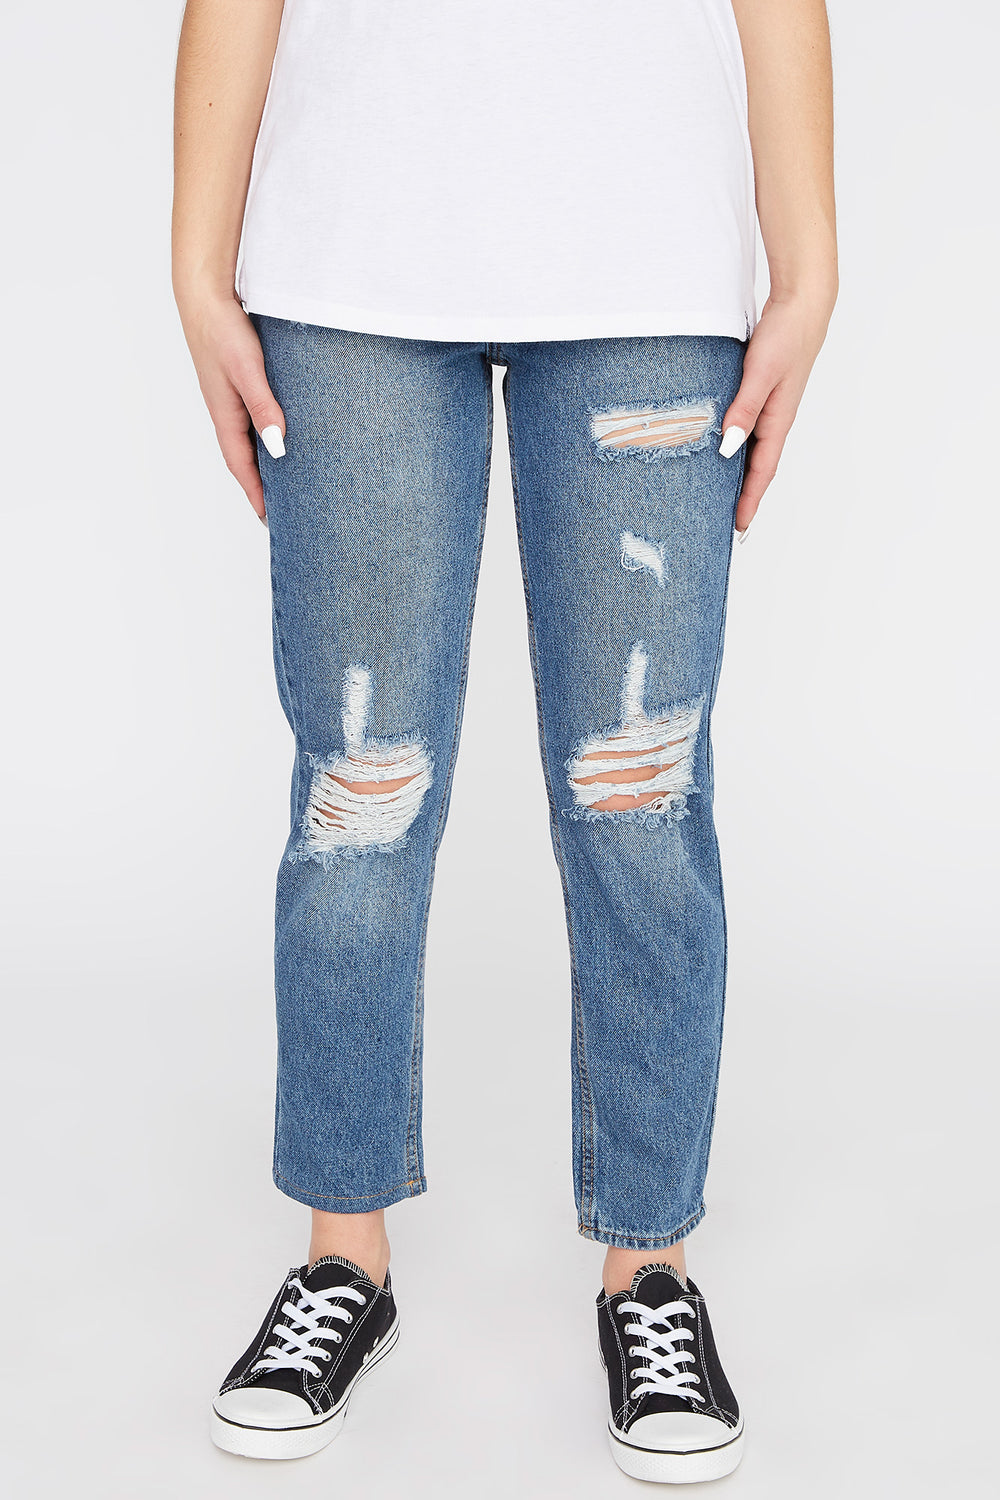 Zoo York Womens Distressed Mom Jeans Denim Blue